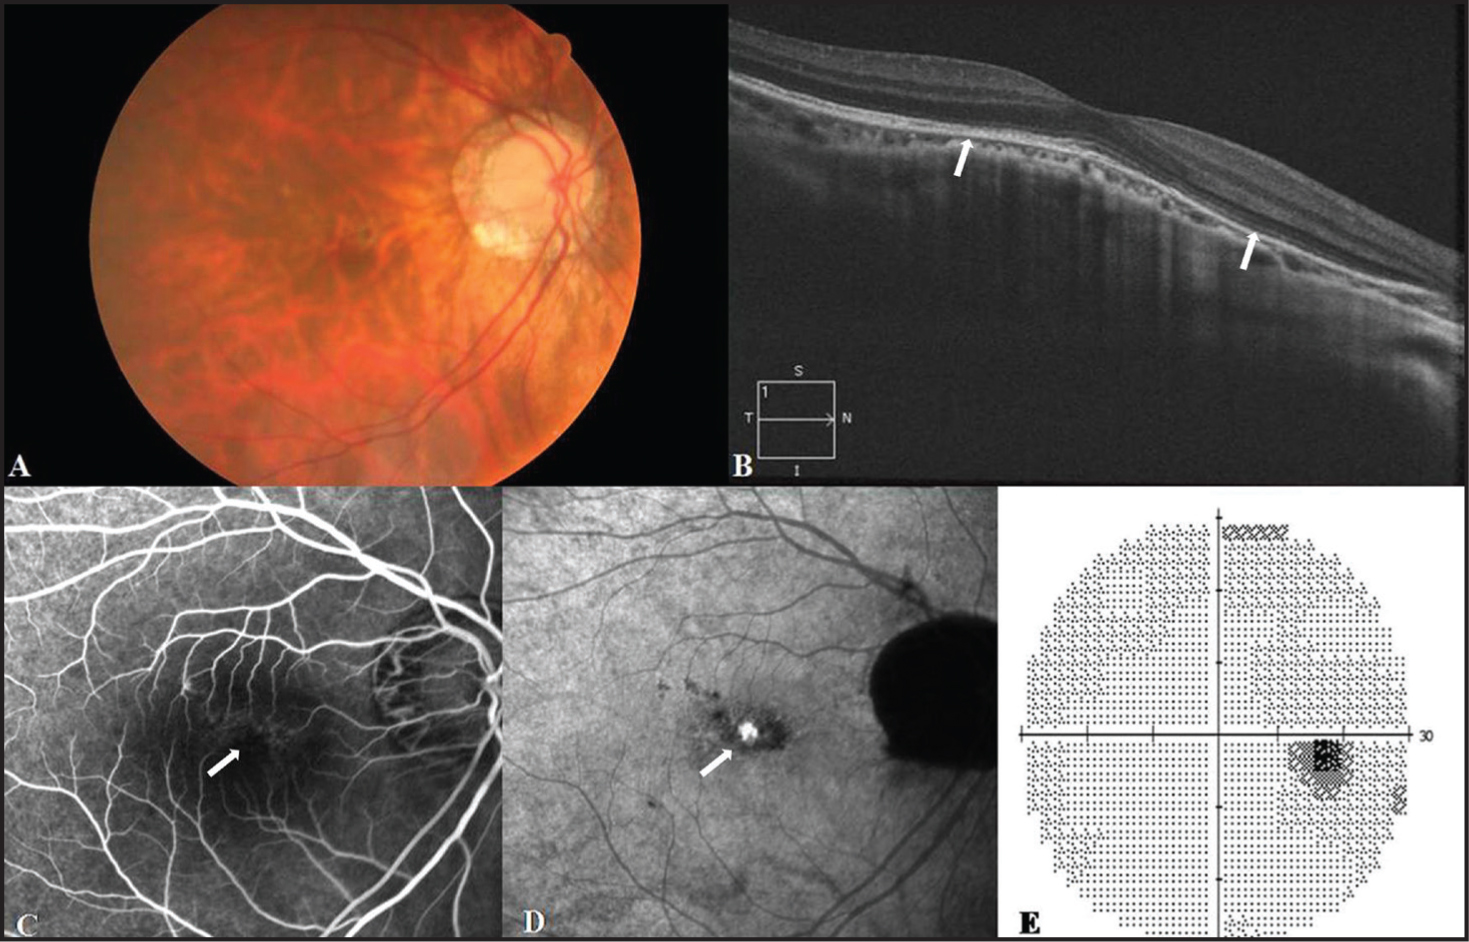 (A) Fundus photograph showing resolution of the white dots 2 weeks later. (B) OCT scan images revealing the spontaneous disappearance of subretinal fluid, with restoration of the inner segment/outer segment line of the photoreceptors (between the arrows). (C) The increased transmission was reduced but remained on fluorescein angiography (arrow). (D) Multiple hypofluorescent spots were decreased on indocyanine green angiography (arrow), and a hyperfluorescent spot was detected. (E) Resolution of the enlarged blind spot was observed in an automated visual field test.